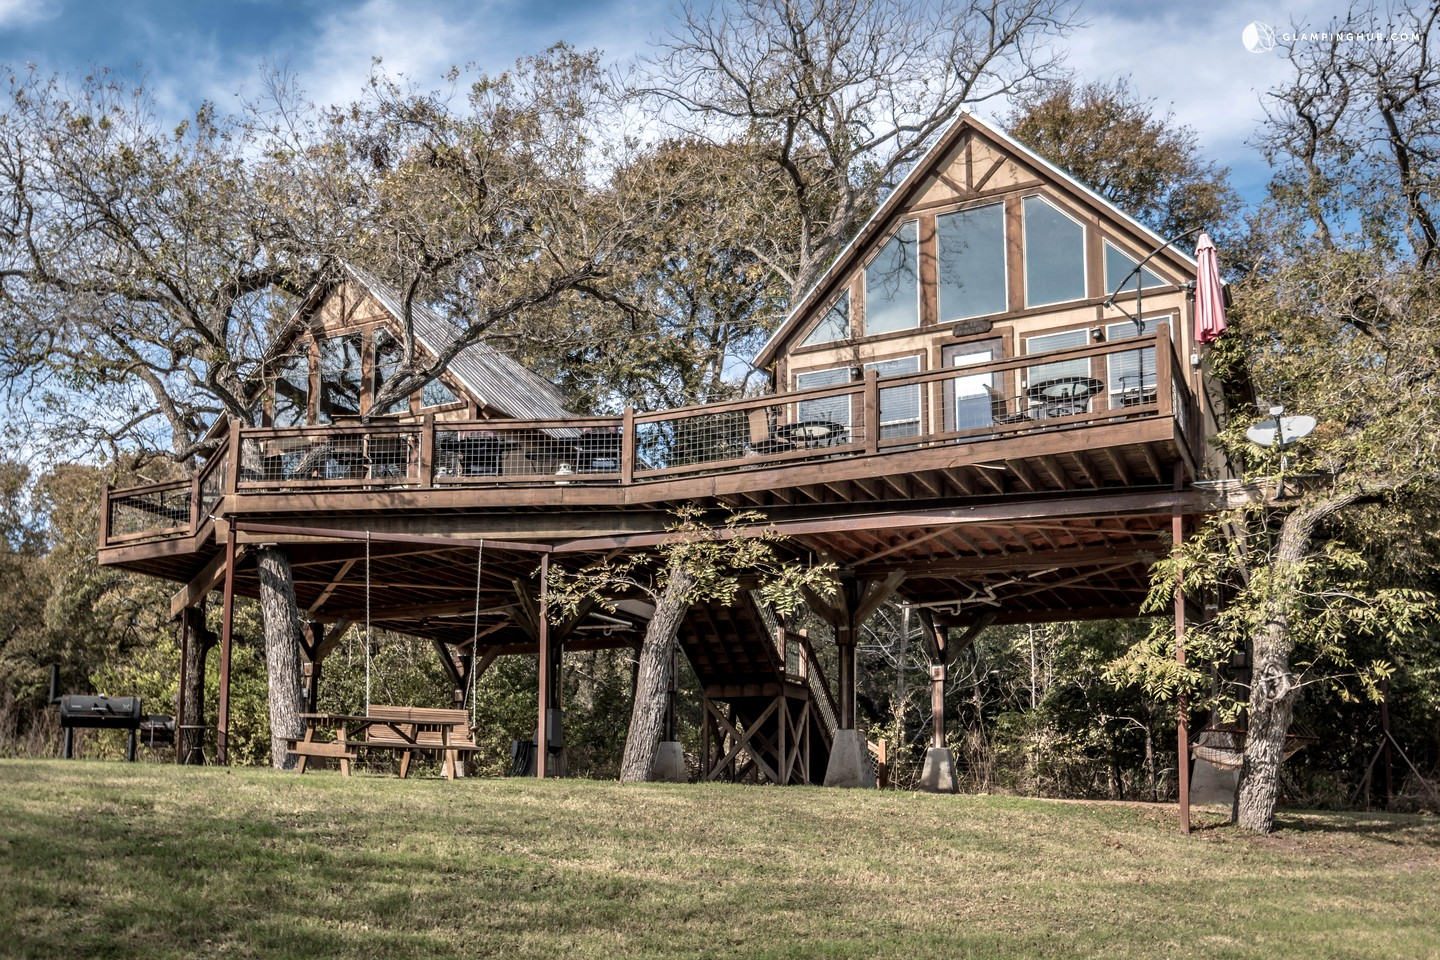 Treehouse tree house rentals in new braunfels